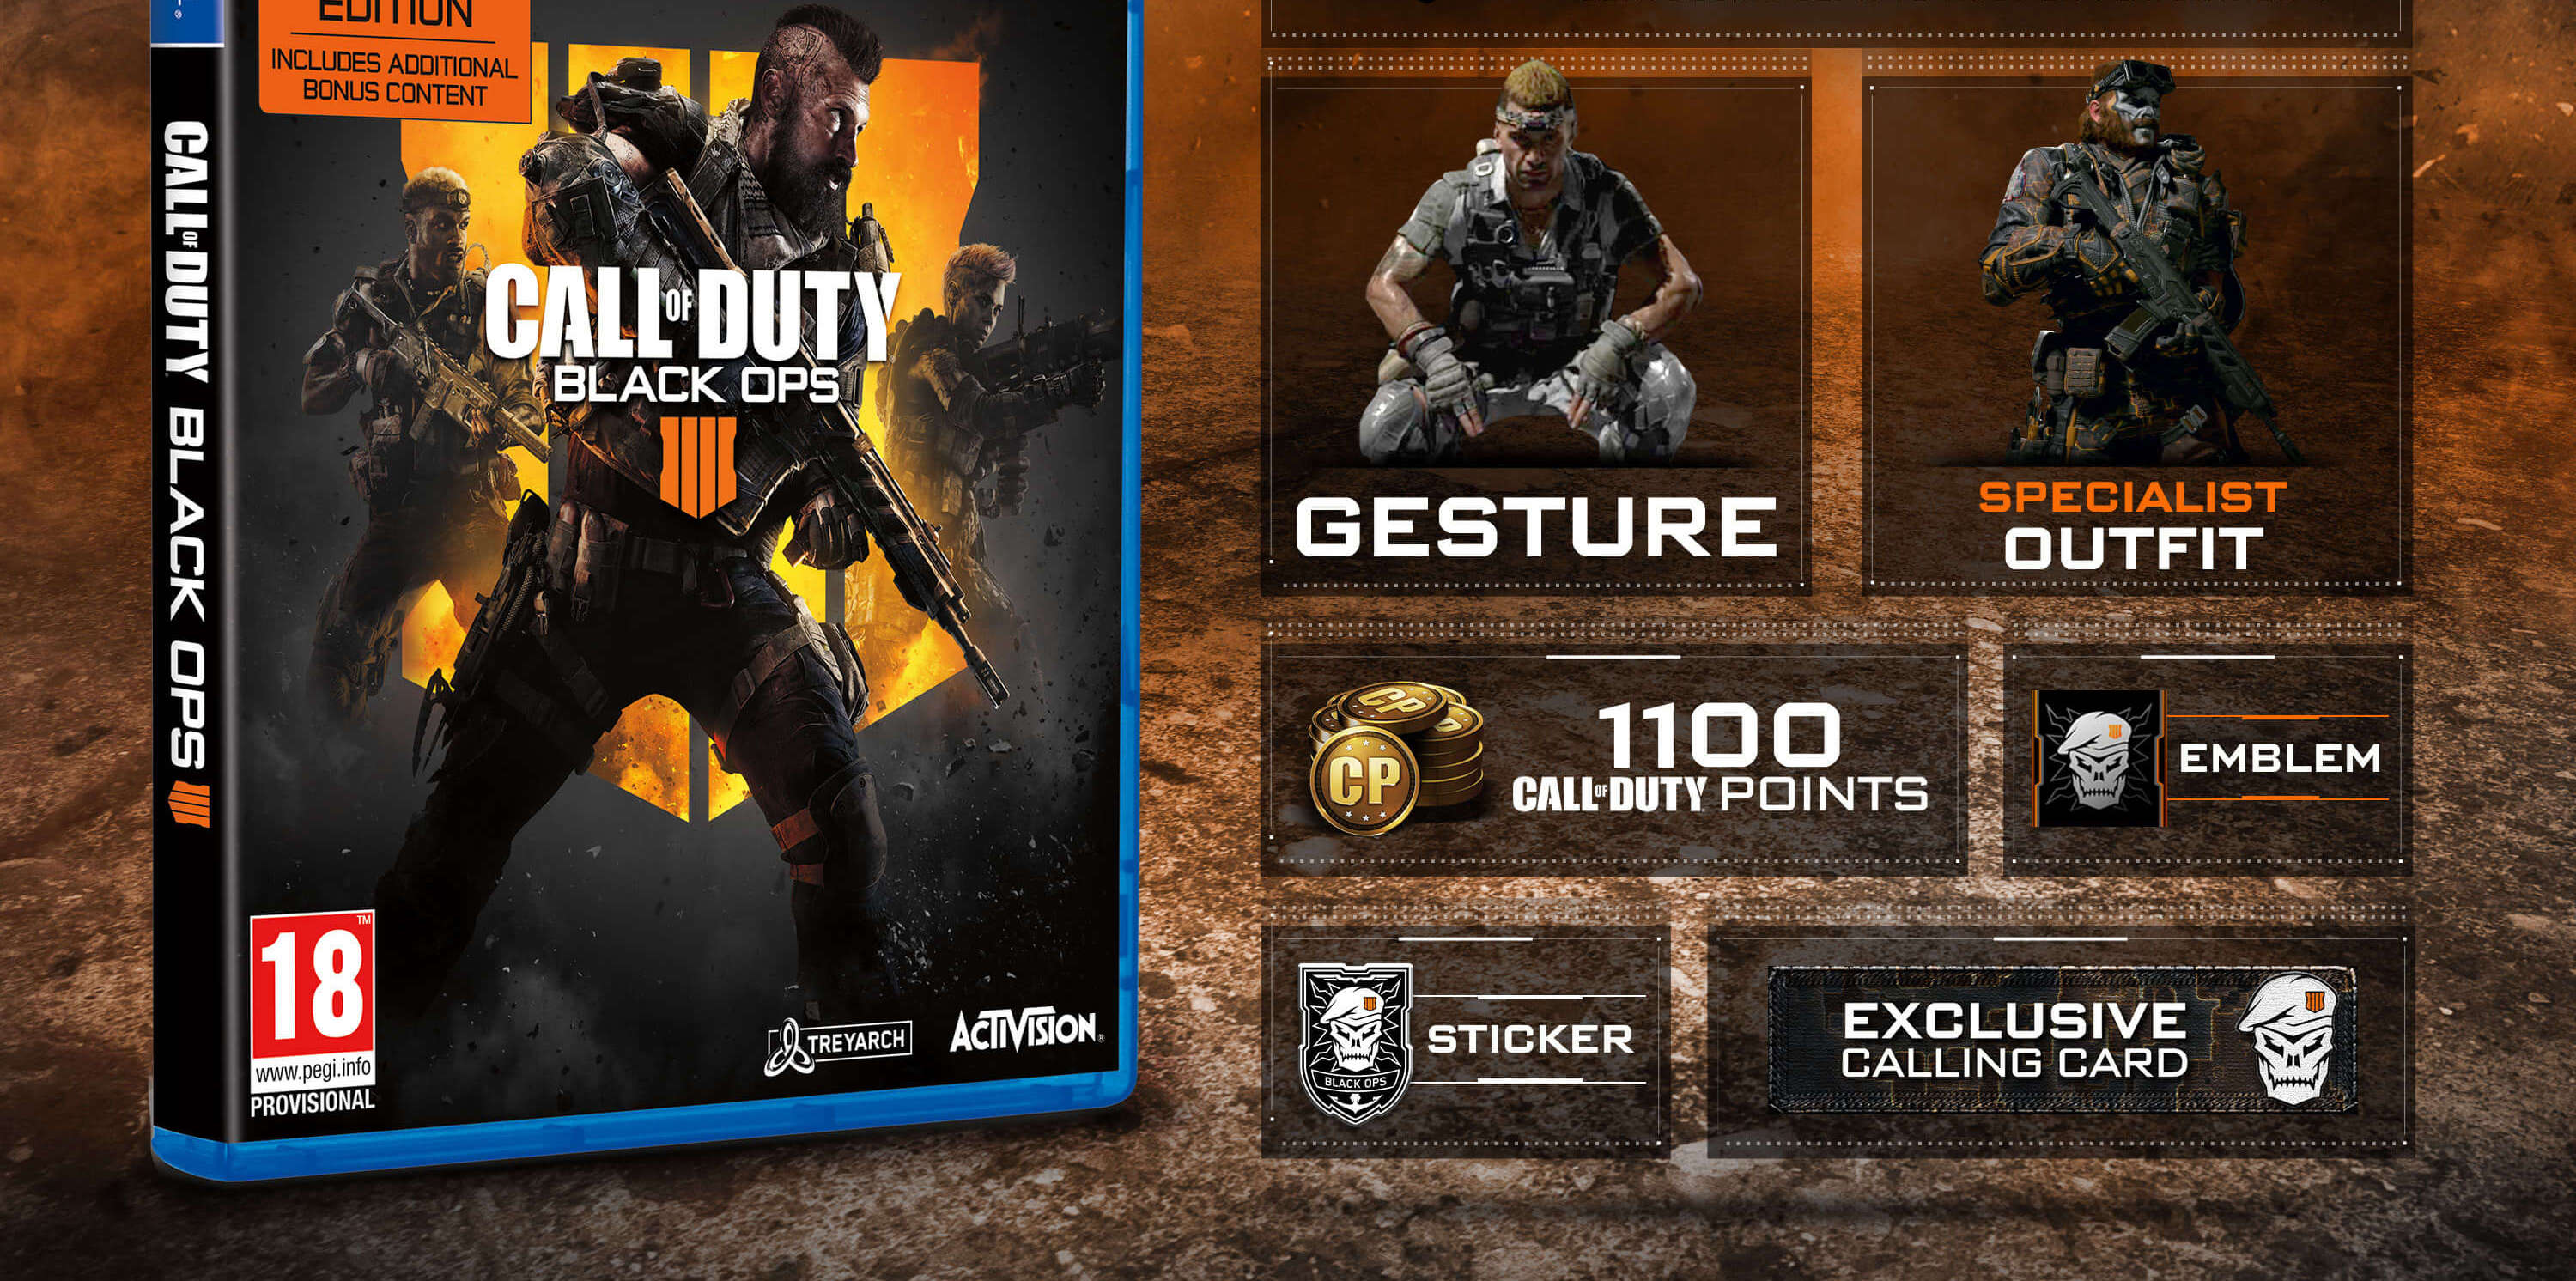 Call Of Duty Black Ops 4 Specialist Edition S Bonus Content Revealed Charlie Intel